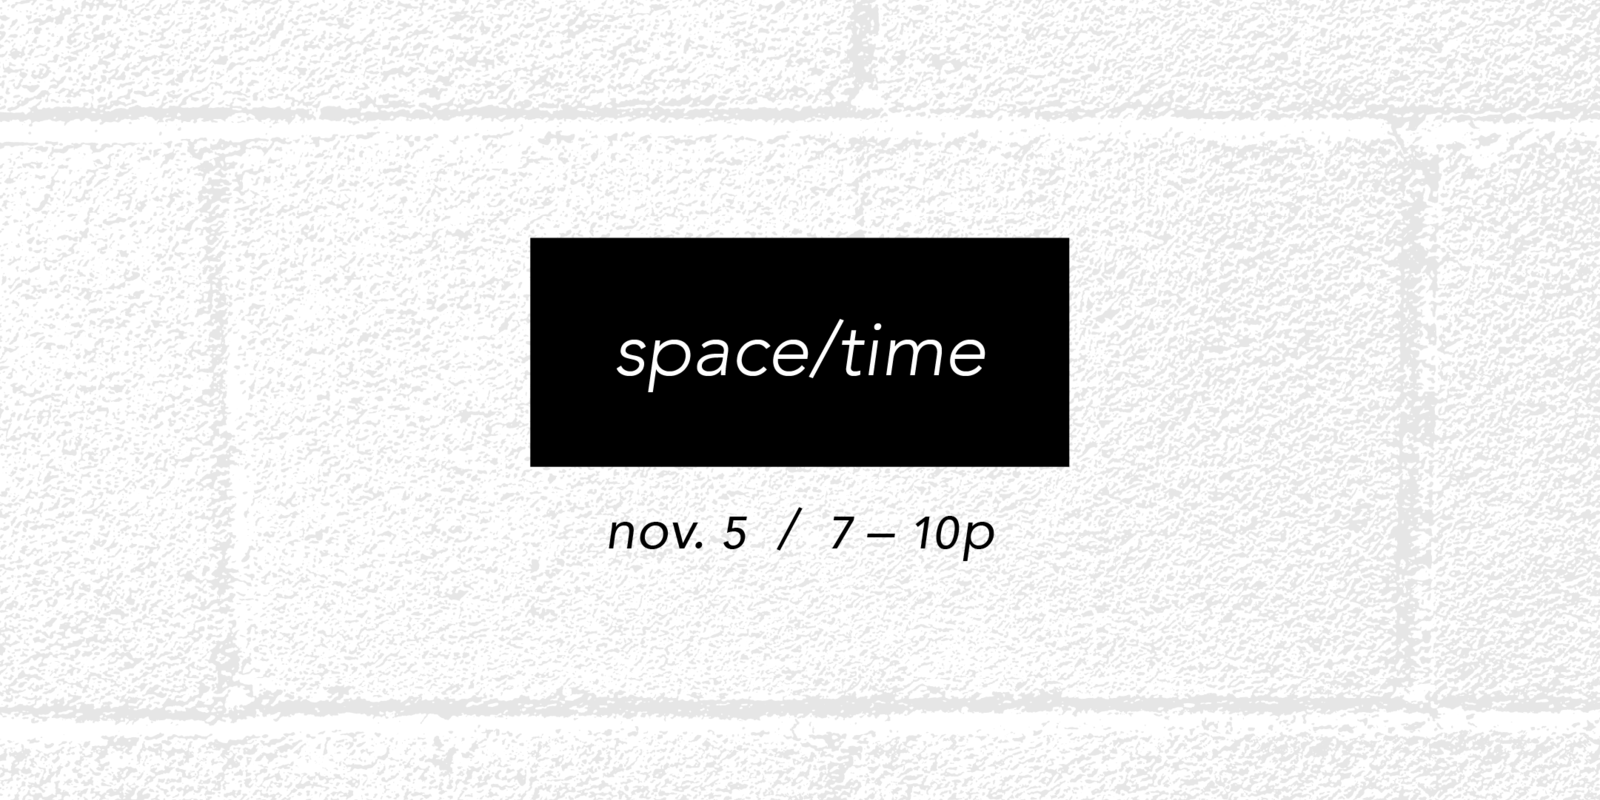 934's Annual Group Show: space/time